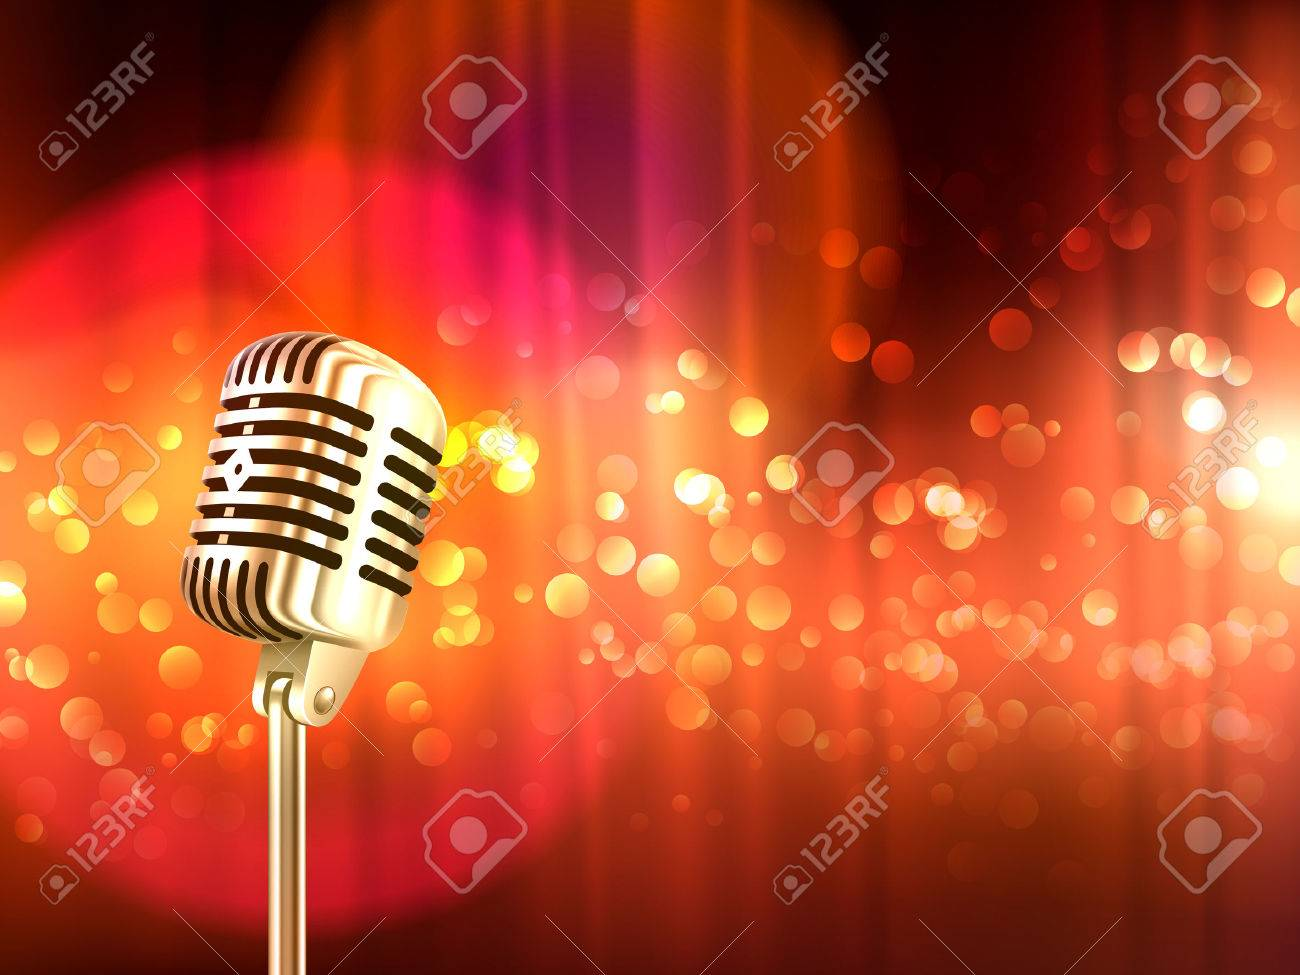 Old fashioned retro big metallic microphone against blurred red light spots background vintage poster abstract vector illustration Stock Vector - 51757289